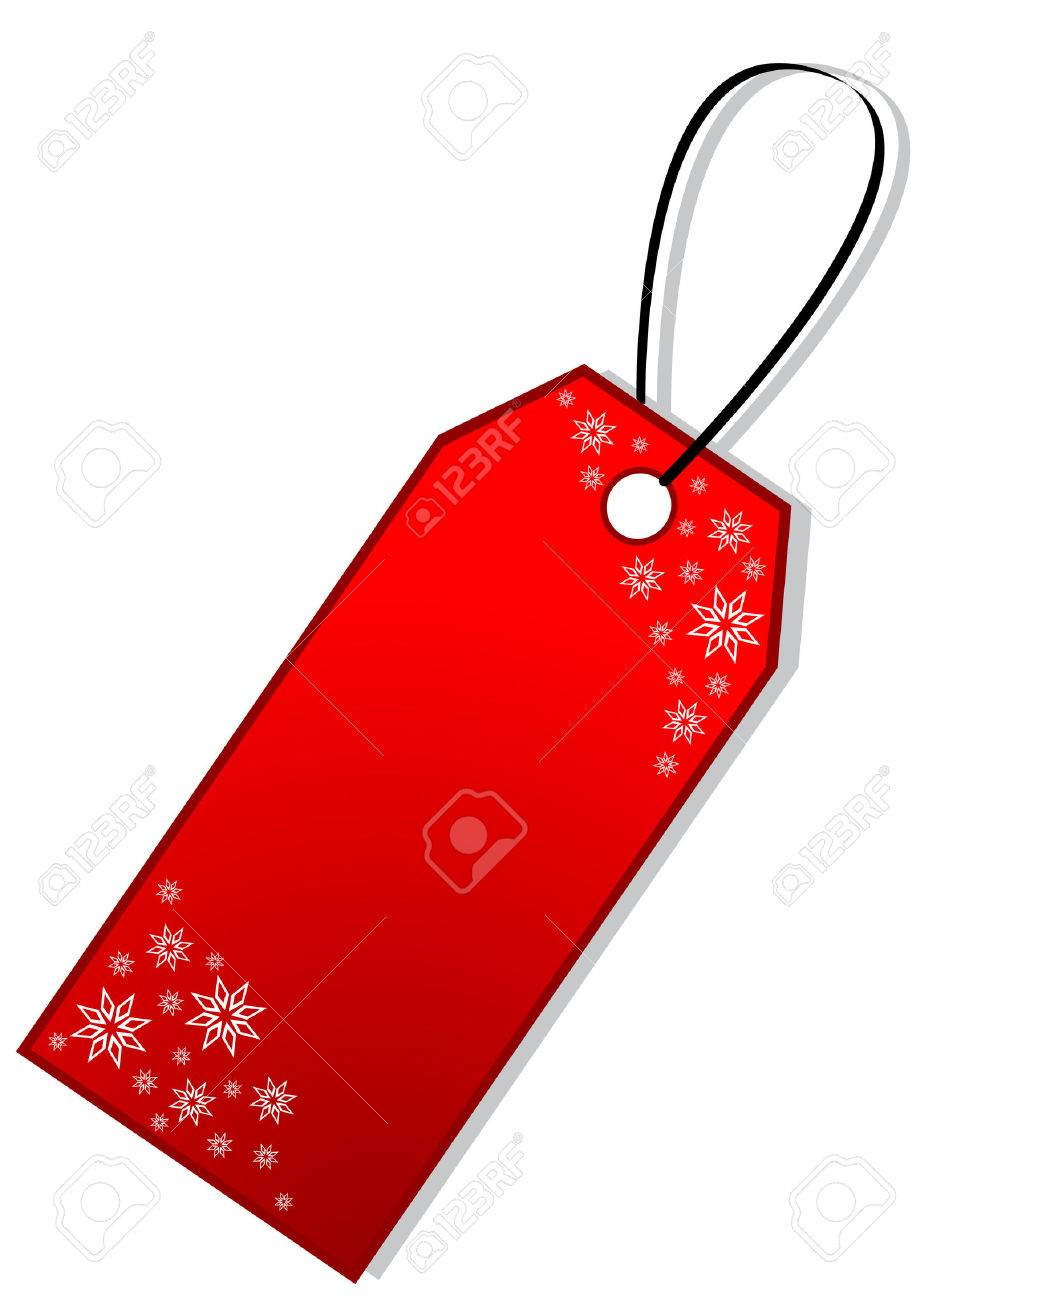 Christmas Gift Tag.Red Christmas Gift Tag With Snowflakes Isolated